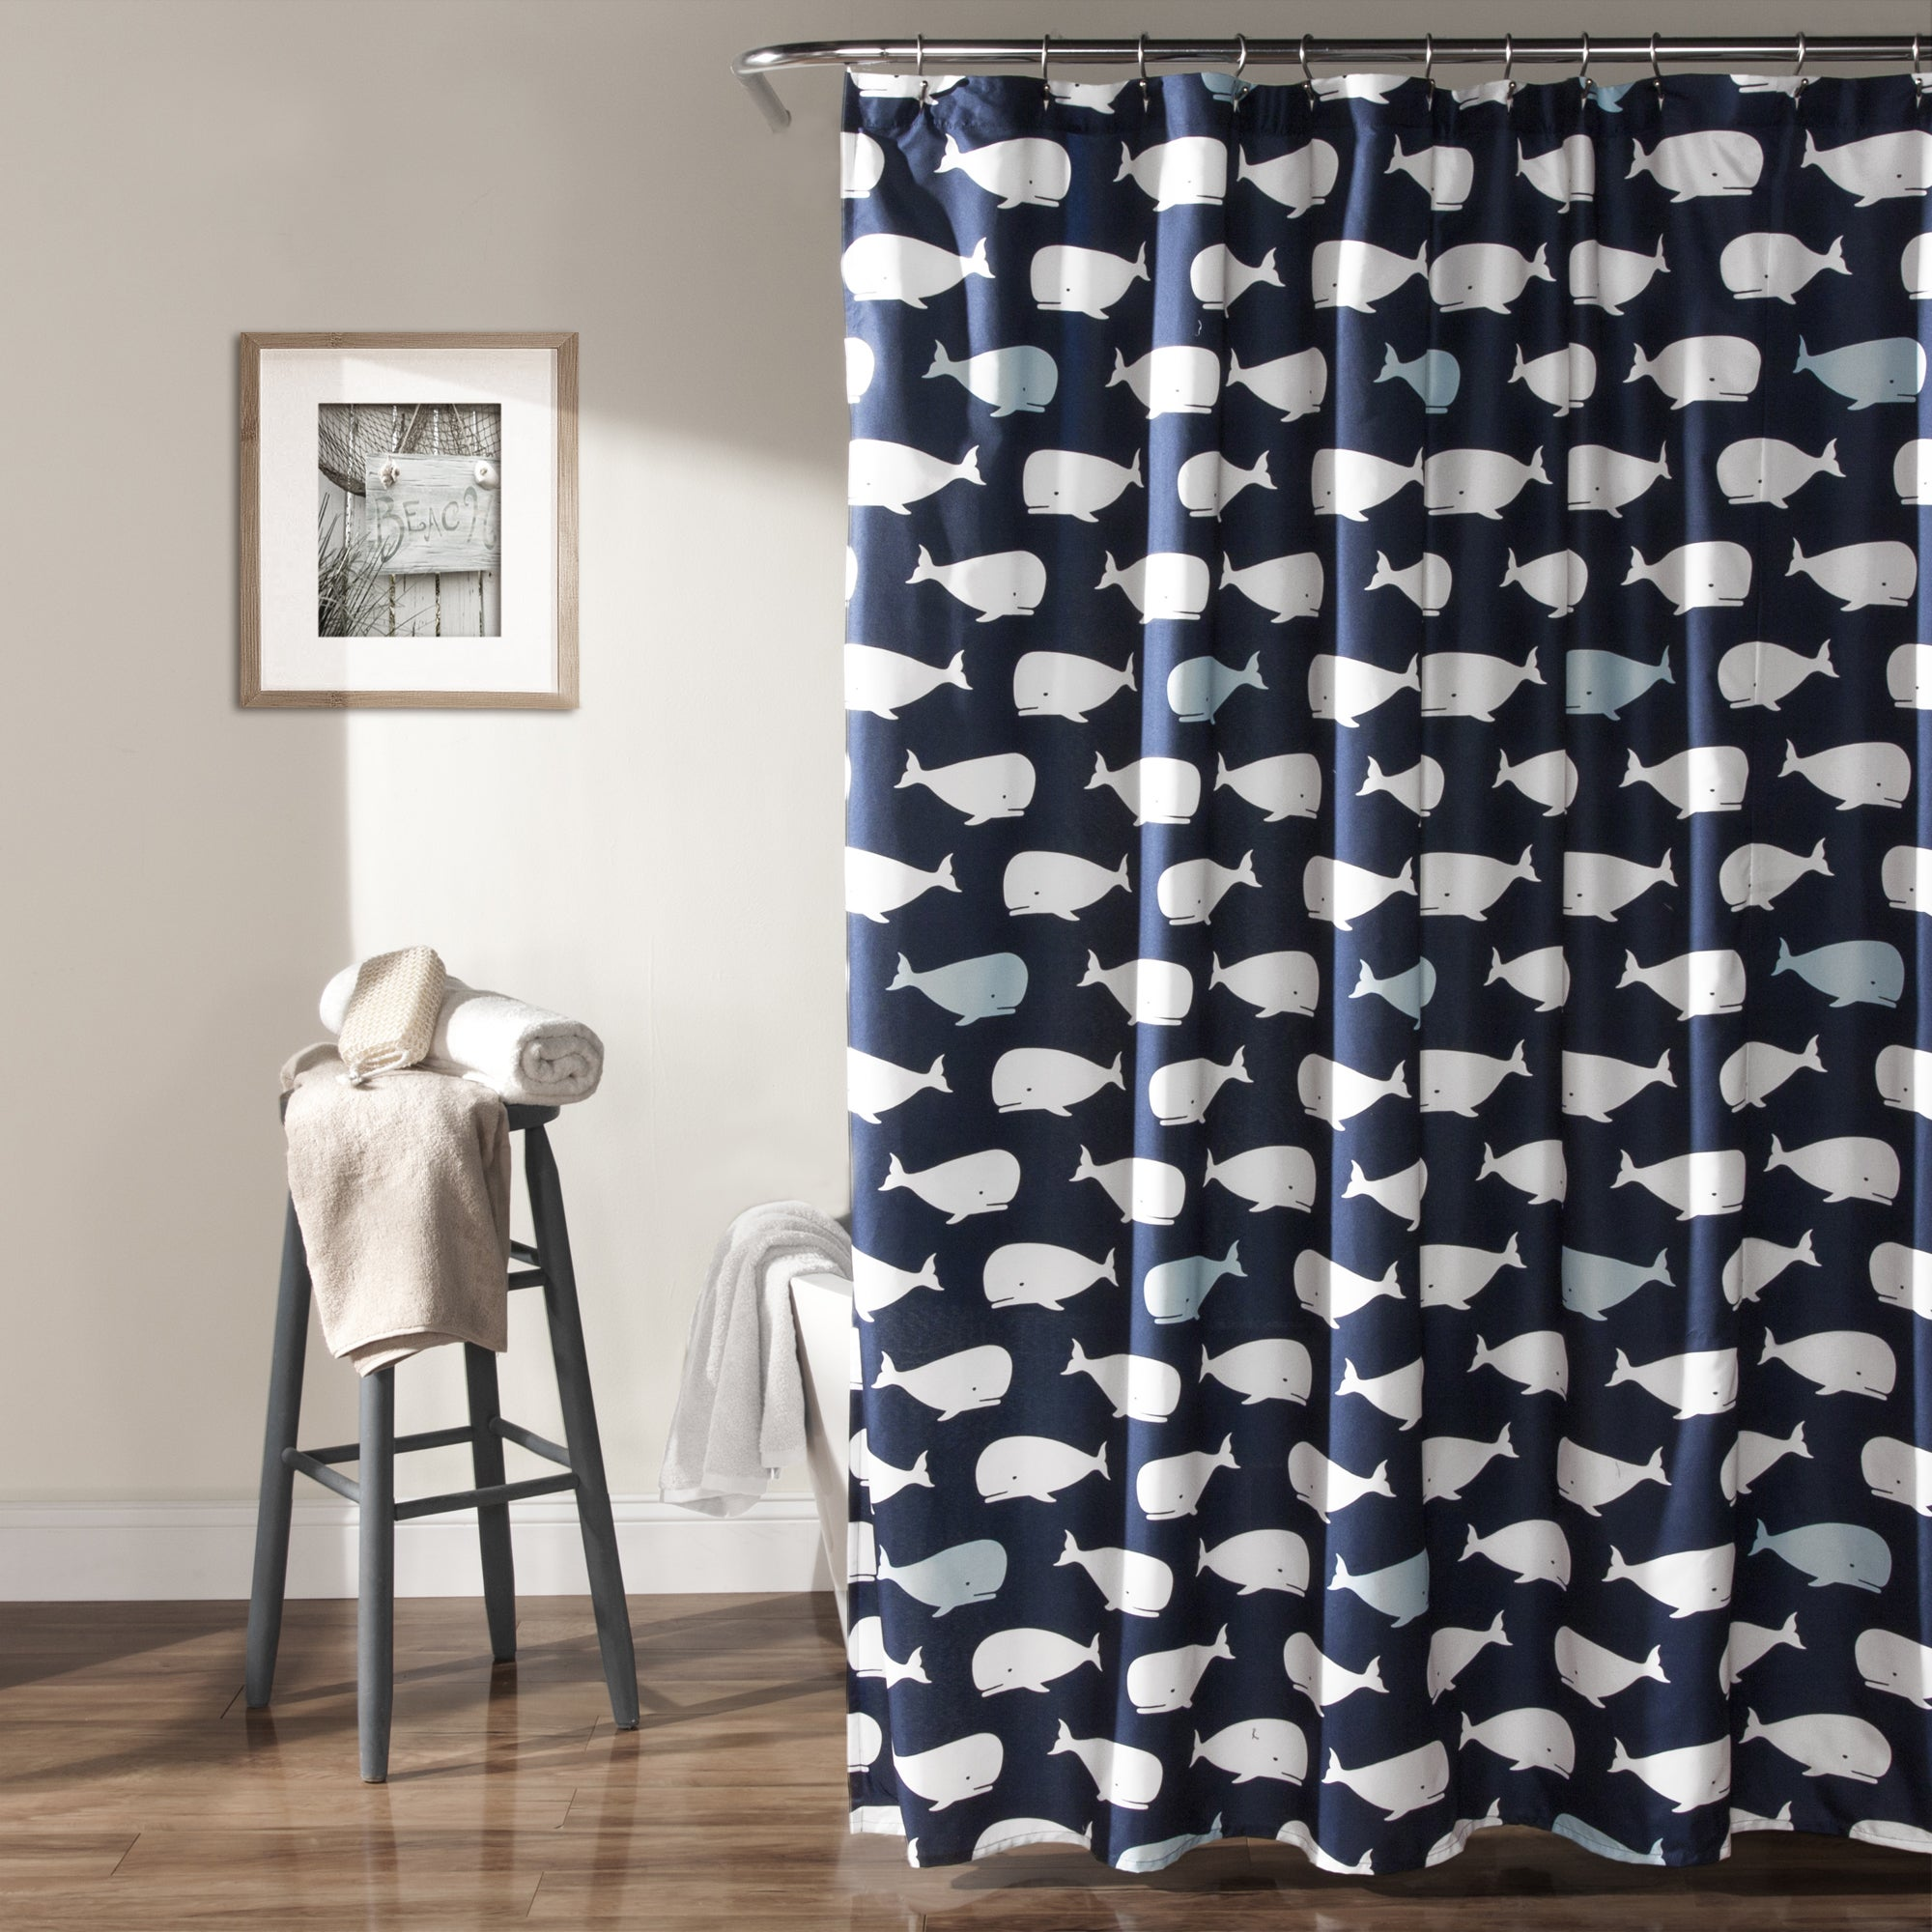 Lush Decor Navy Whale Shower Curtain - Free Shipping On Orders Over $45 -  Overstock.com - 18337523